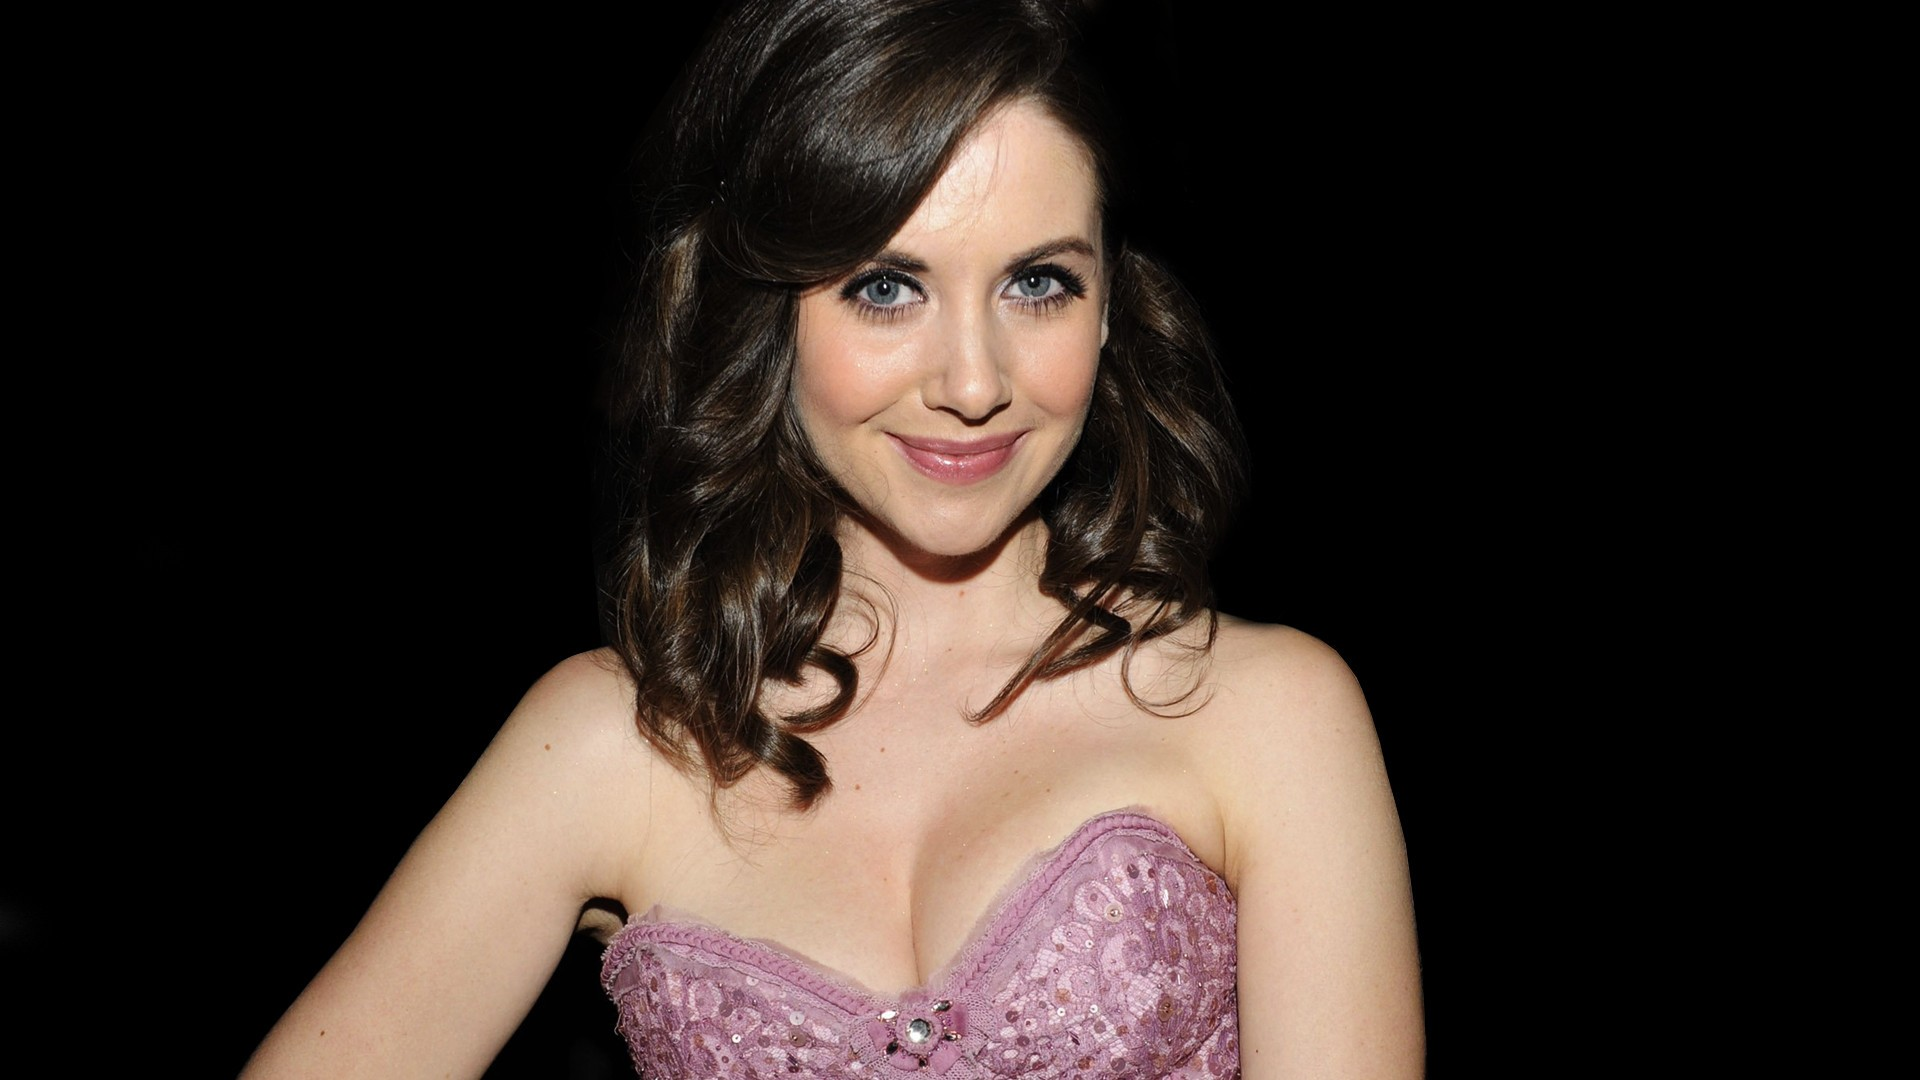 Alison Brie wallpapers High Resolution and Quality Download